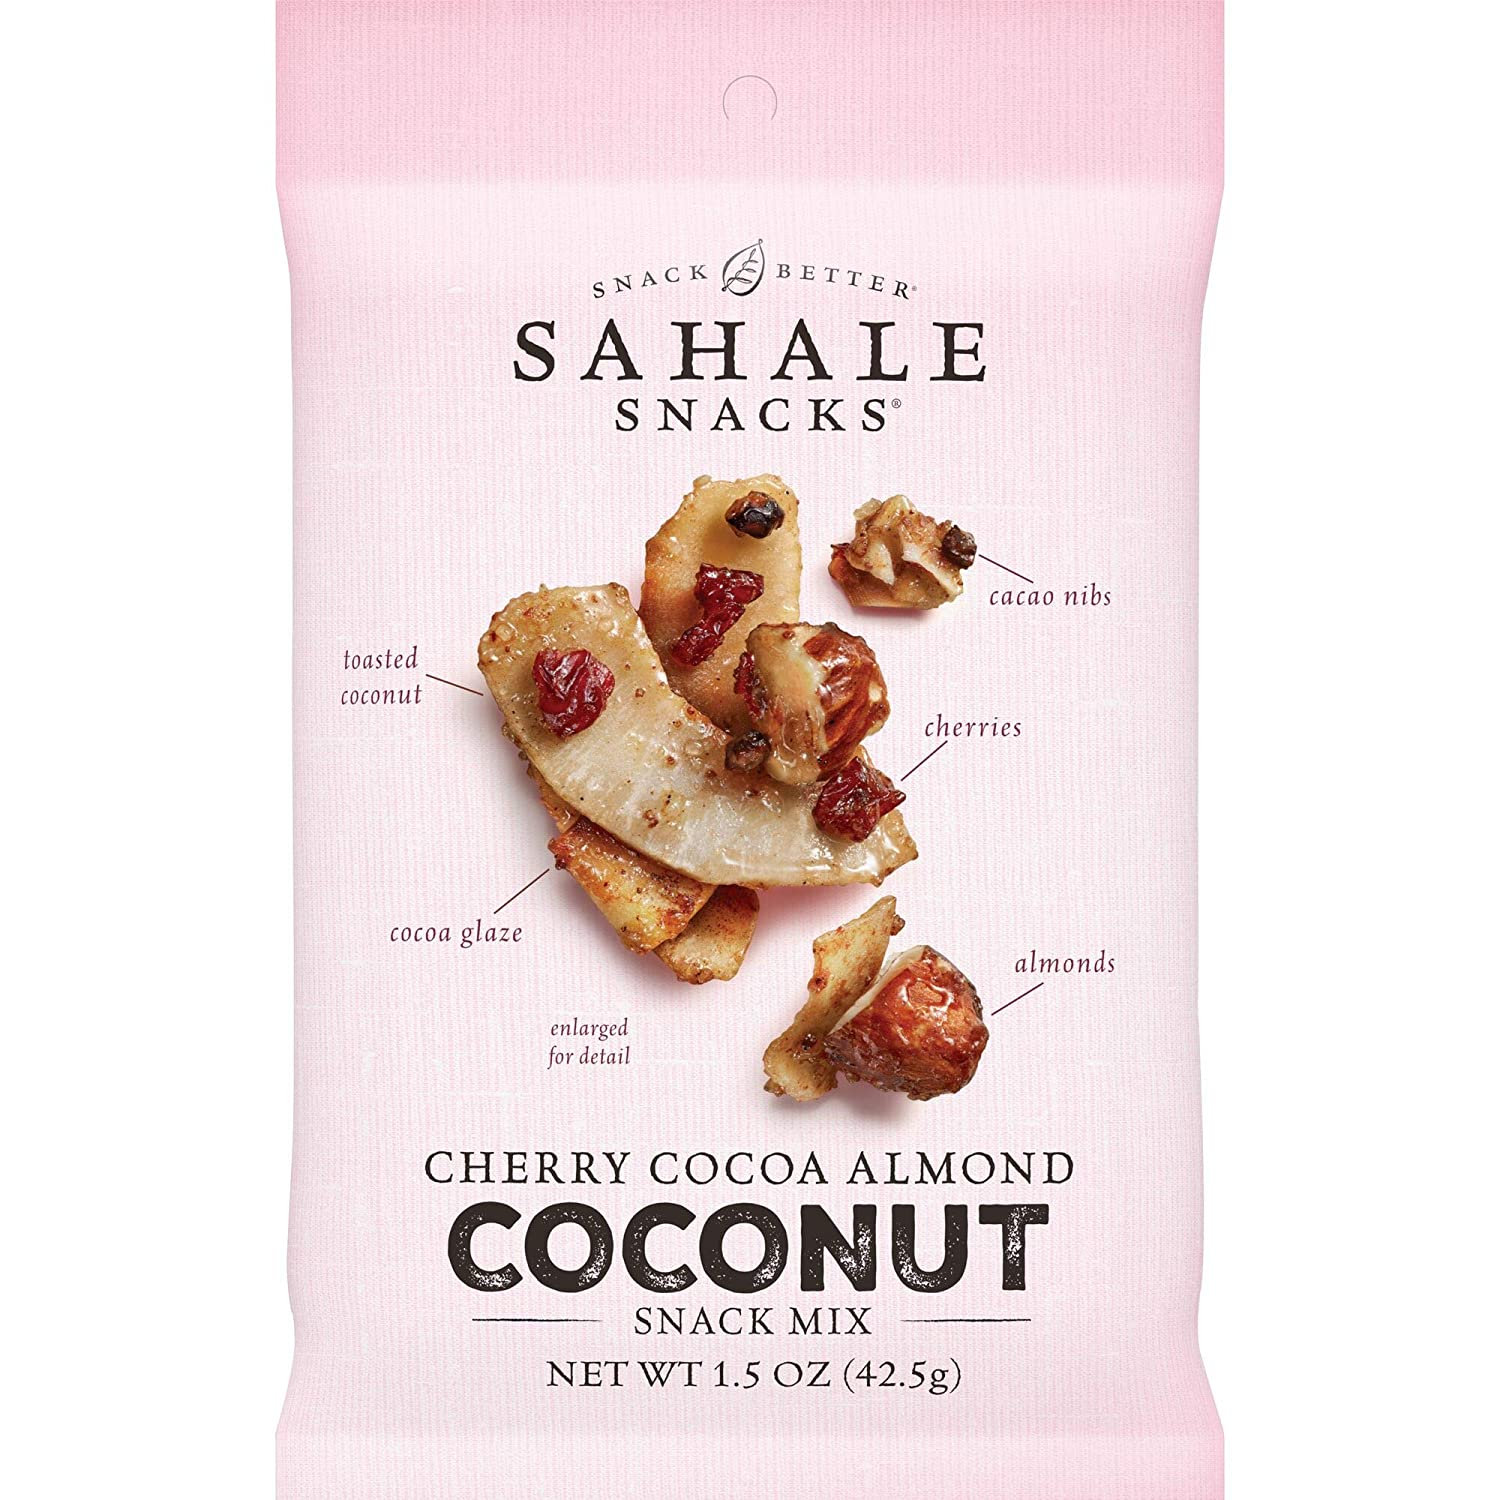 Sahale Snacks Cherry Cocoa Almond Coconut Snack Mix, 1.5 Ounces (Pack of 18)